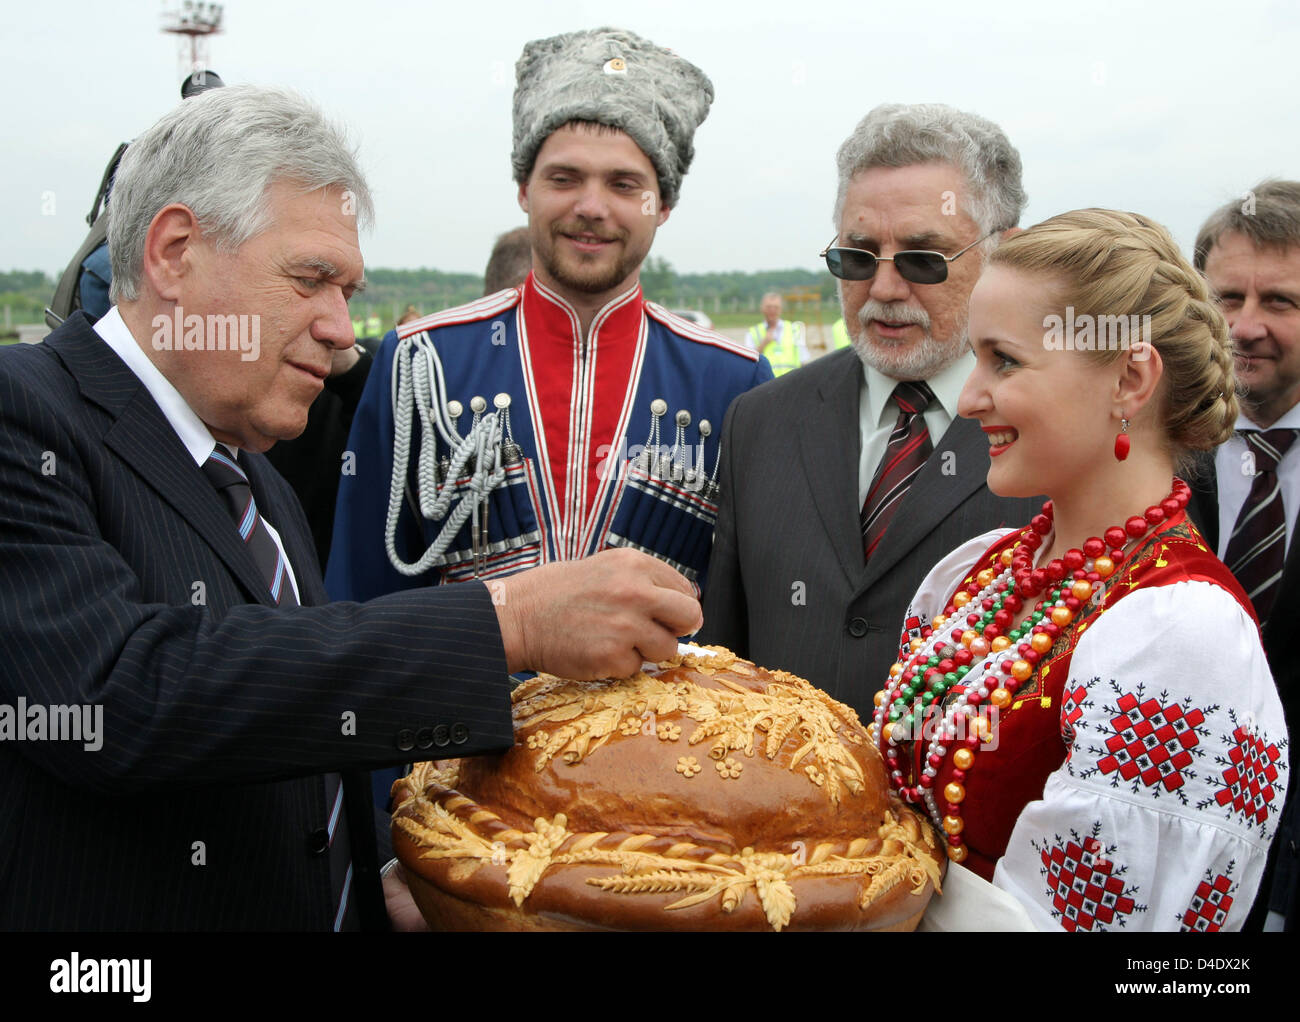 German Minister Of Economy Michael Glos L Is Traditionally Welcomed Stock Photo Alamy